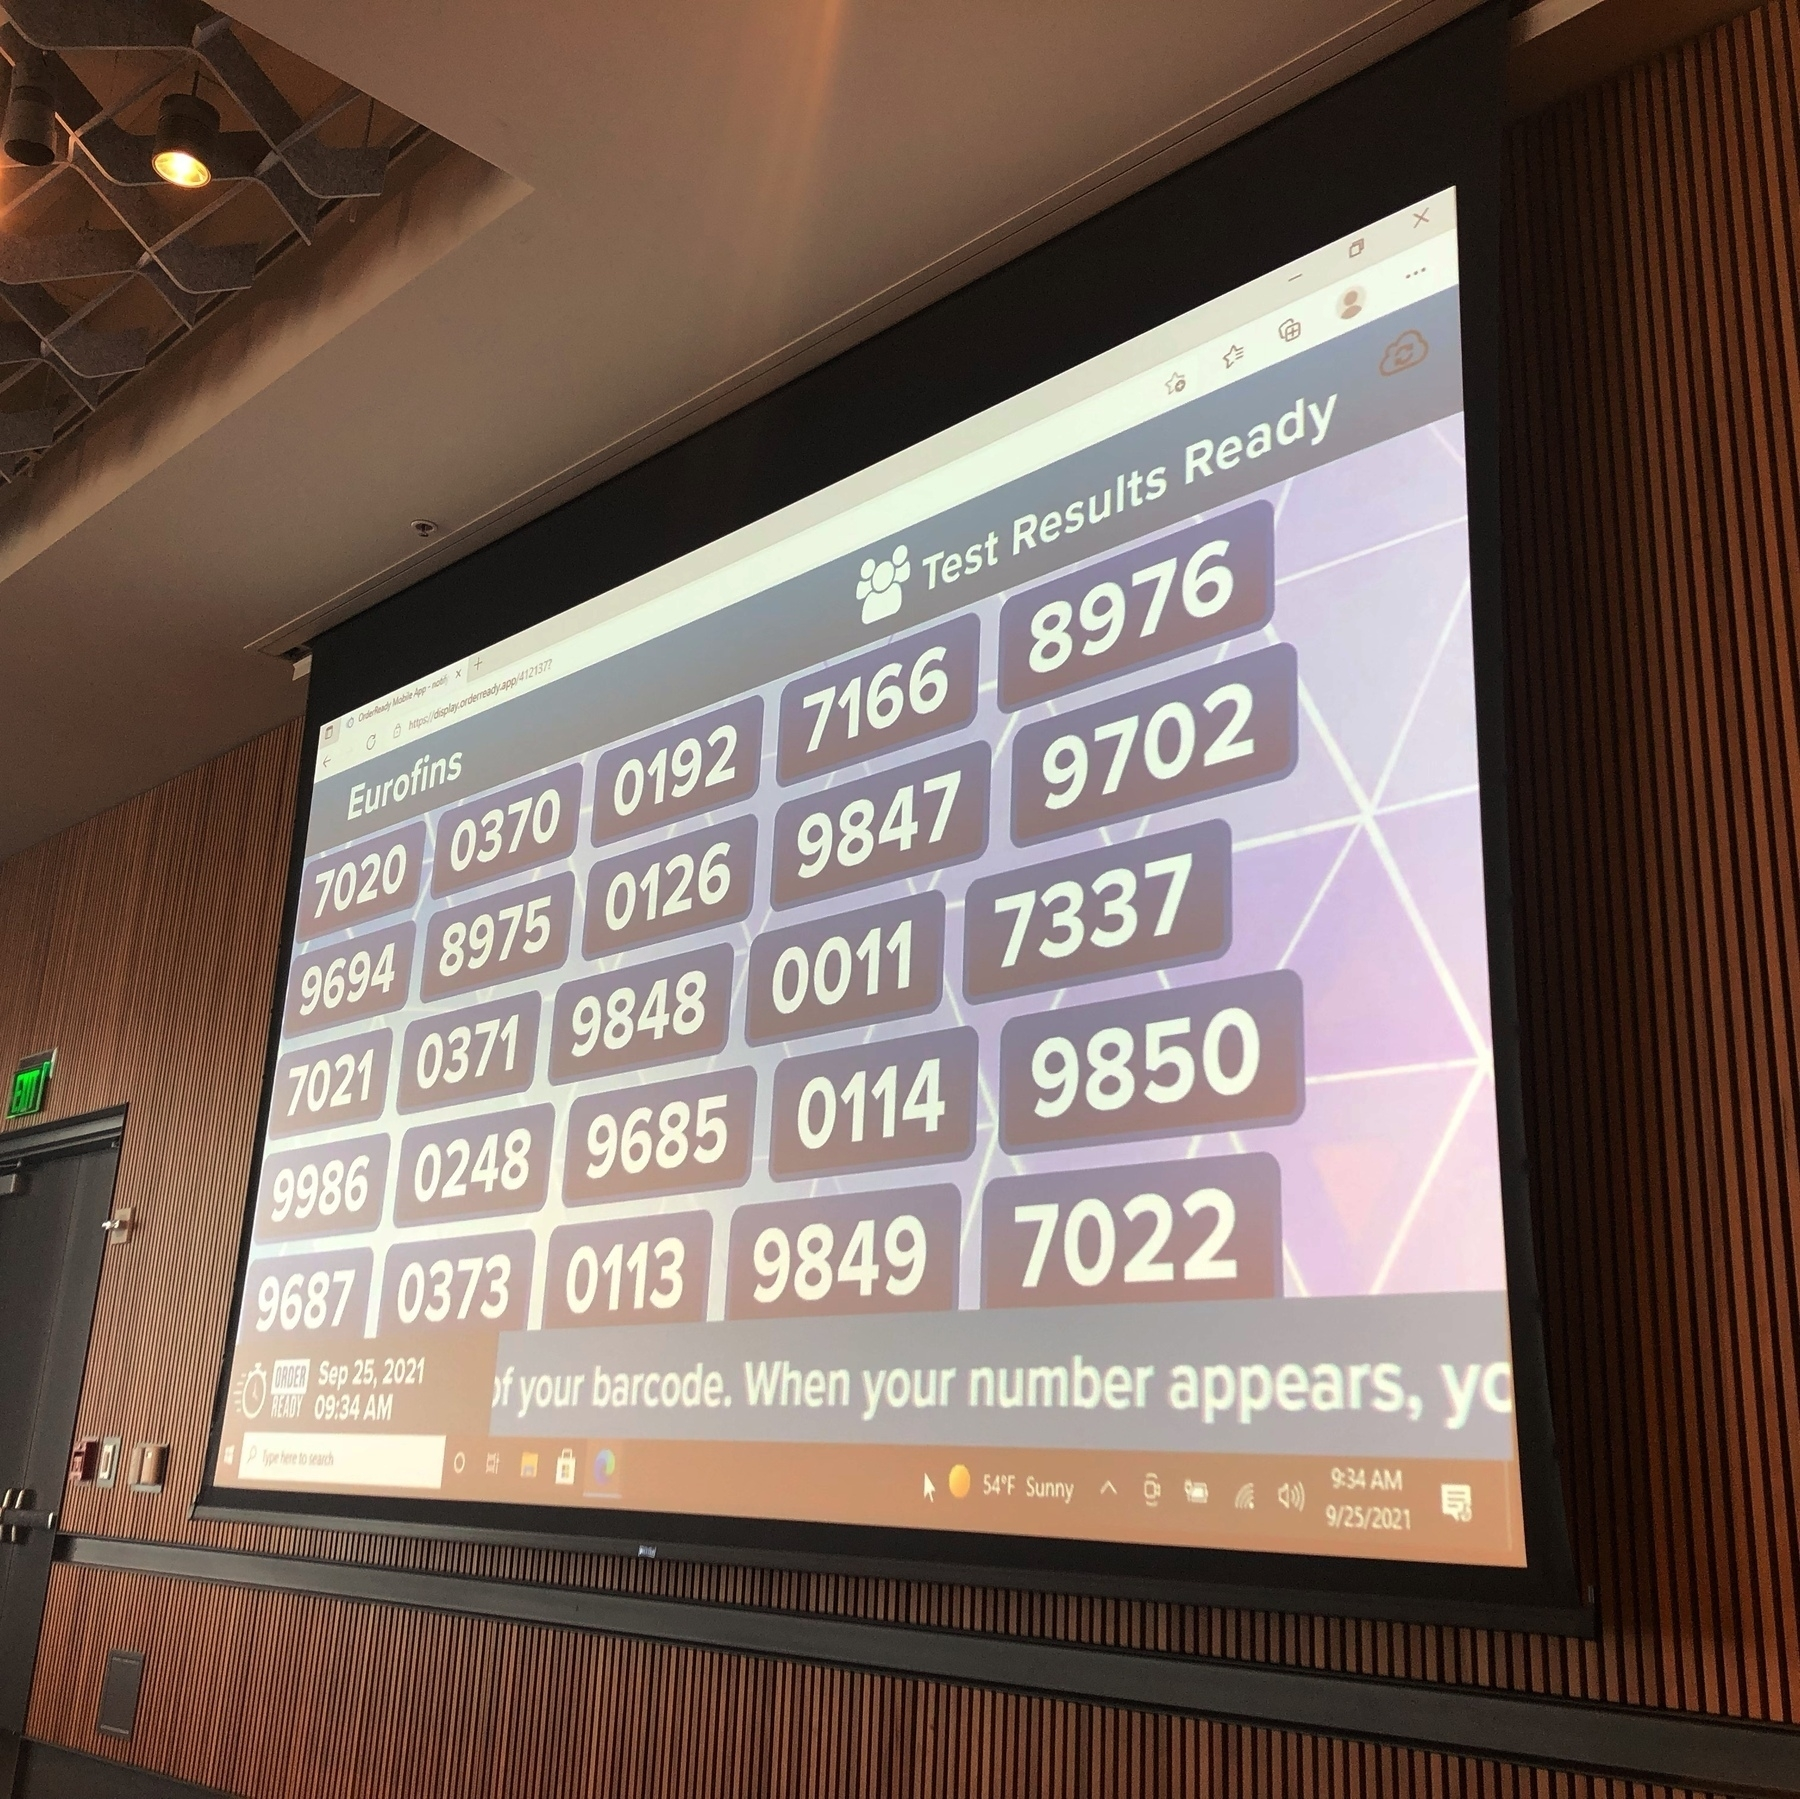 A big wall screen showing four digit numbers. When your number is called your test results are ready.